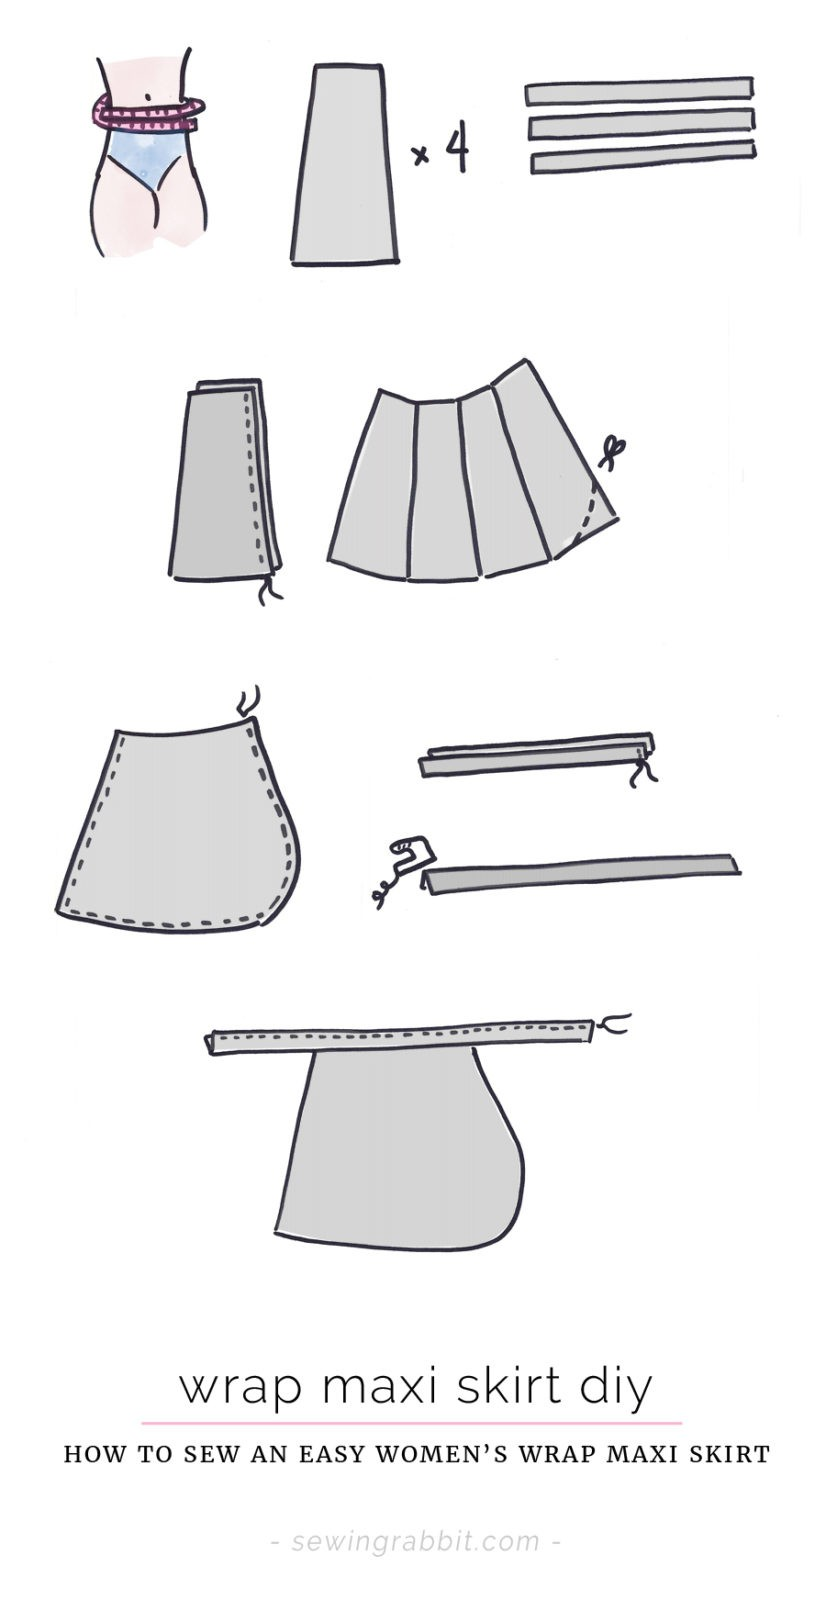 how to sew a wrap maxi skirt